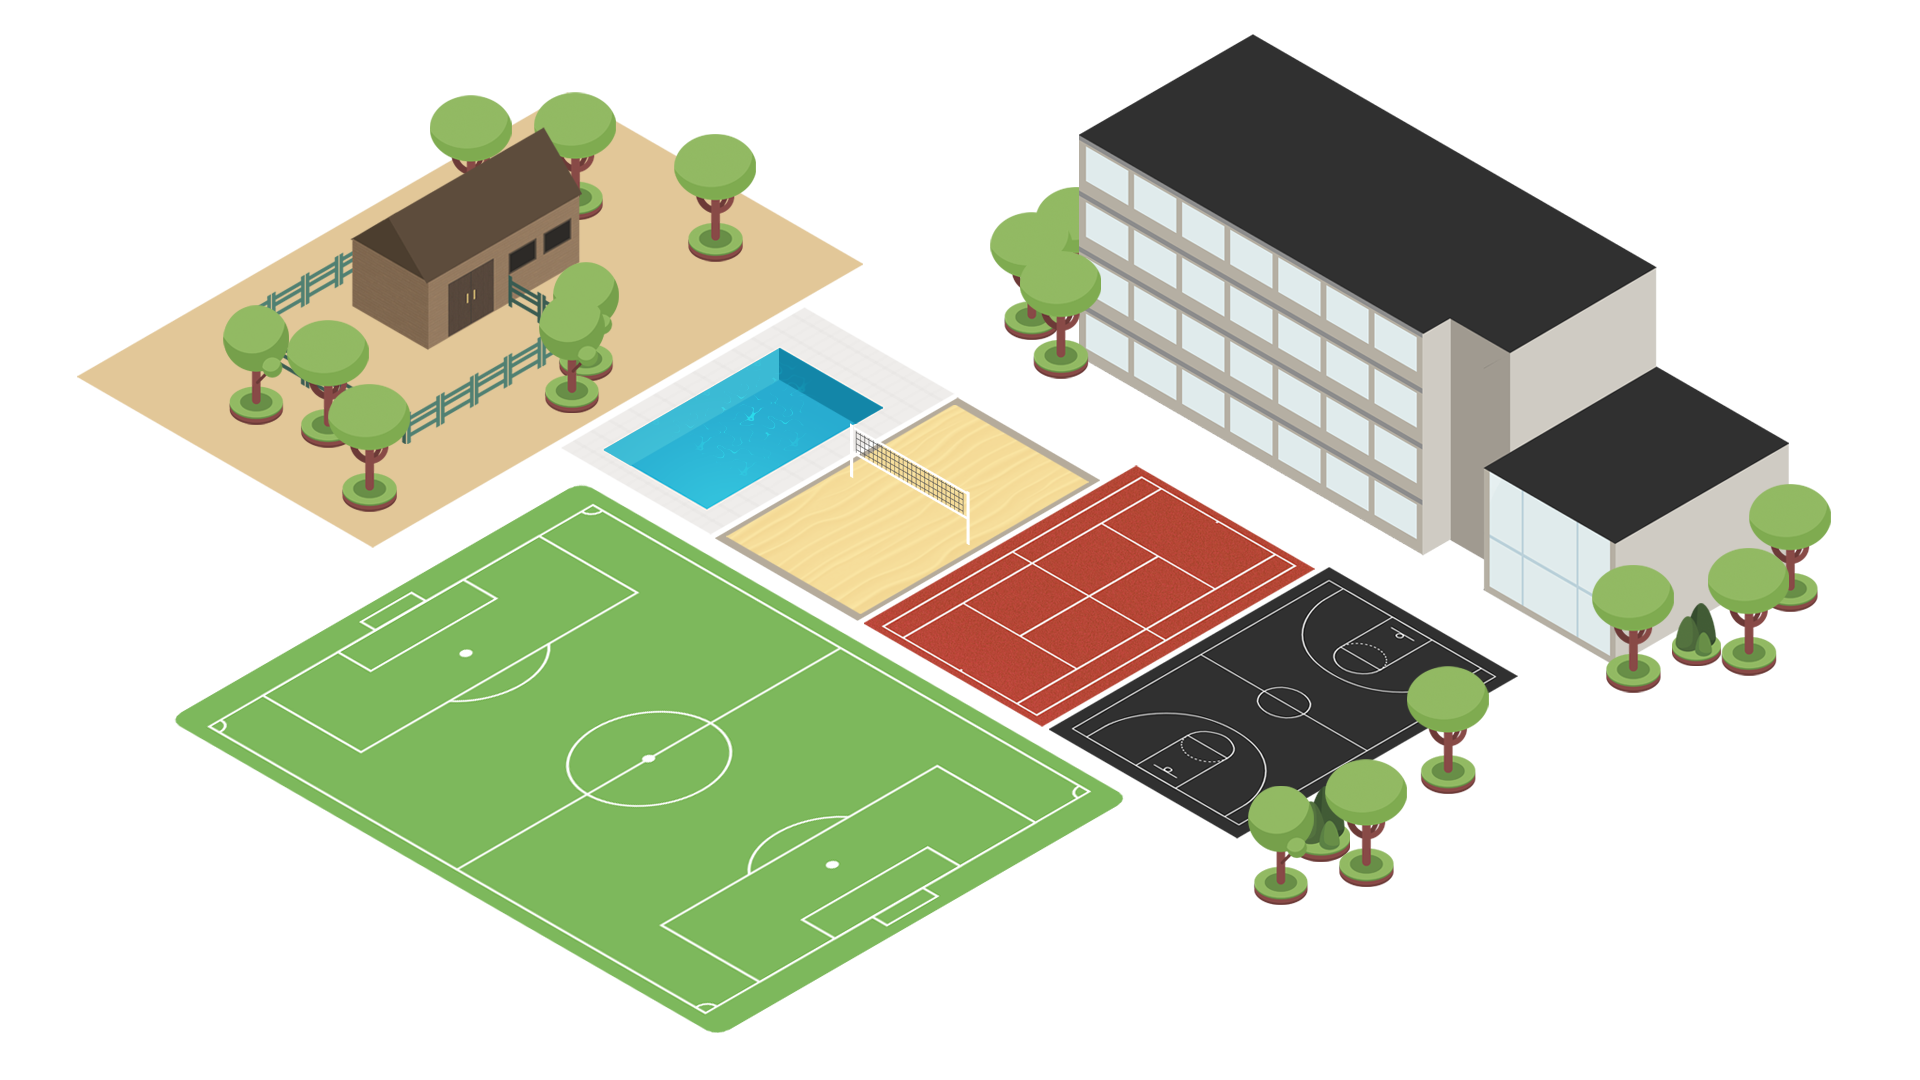 International School Altdorf Isometric Map